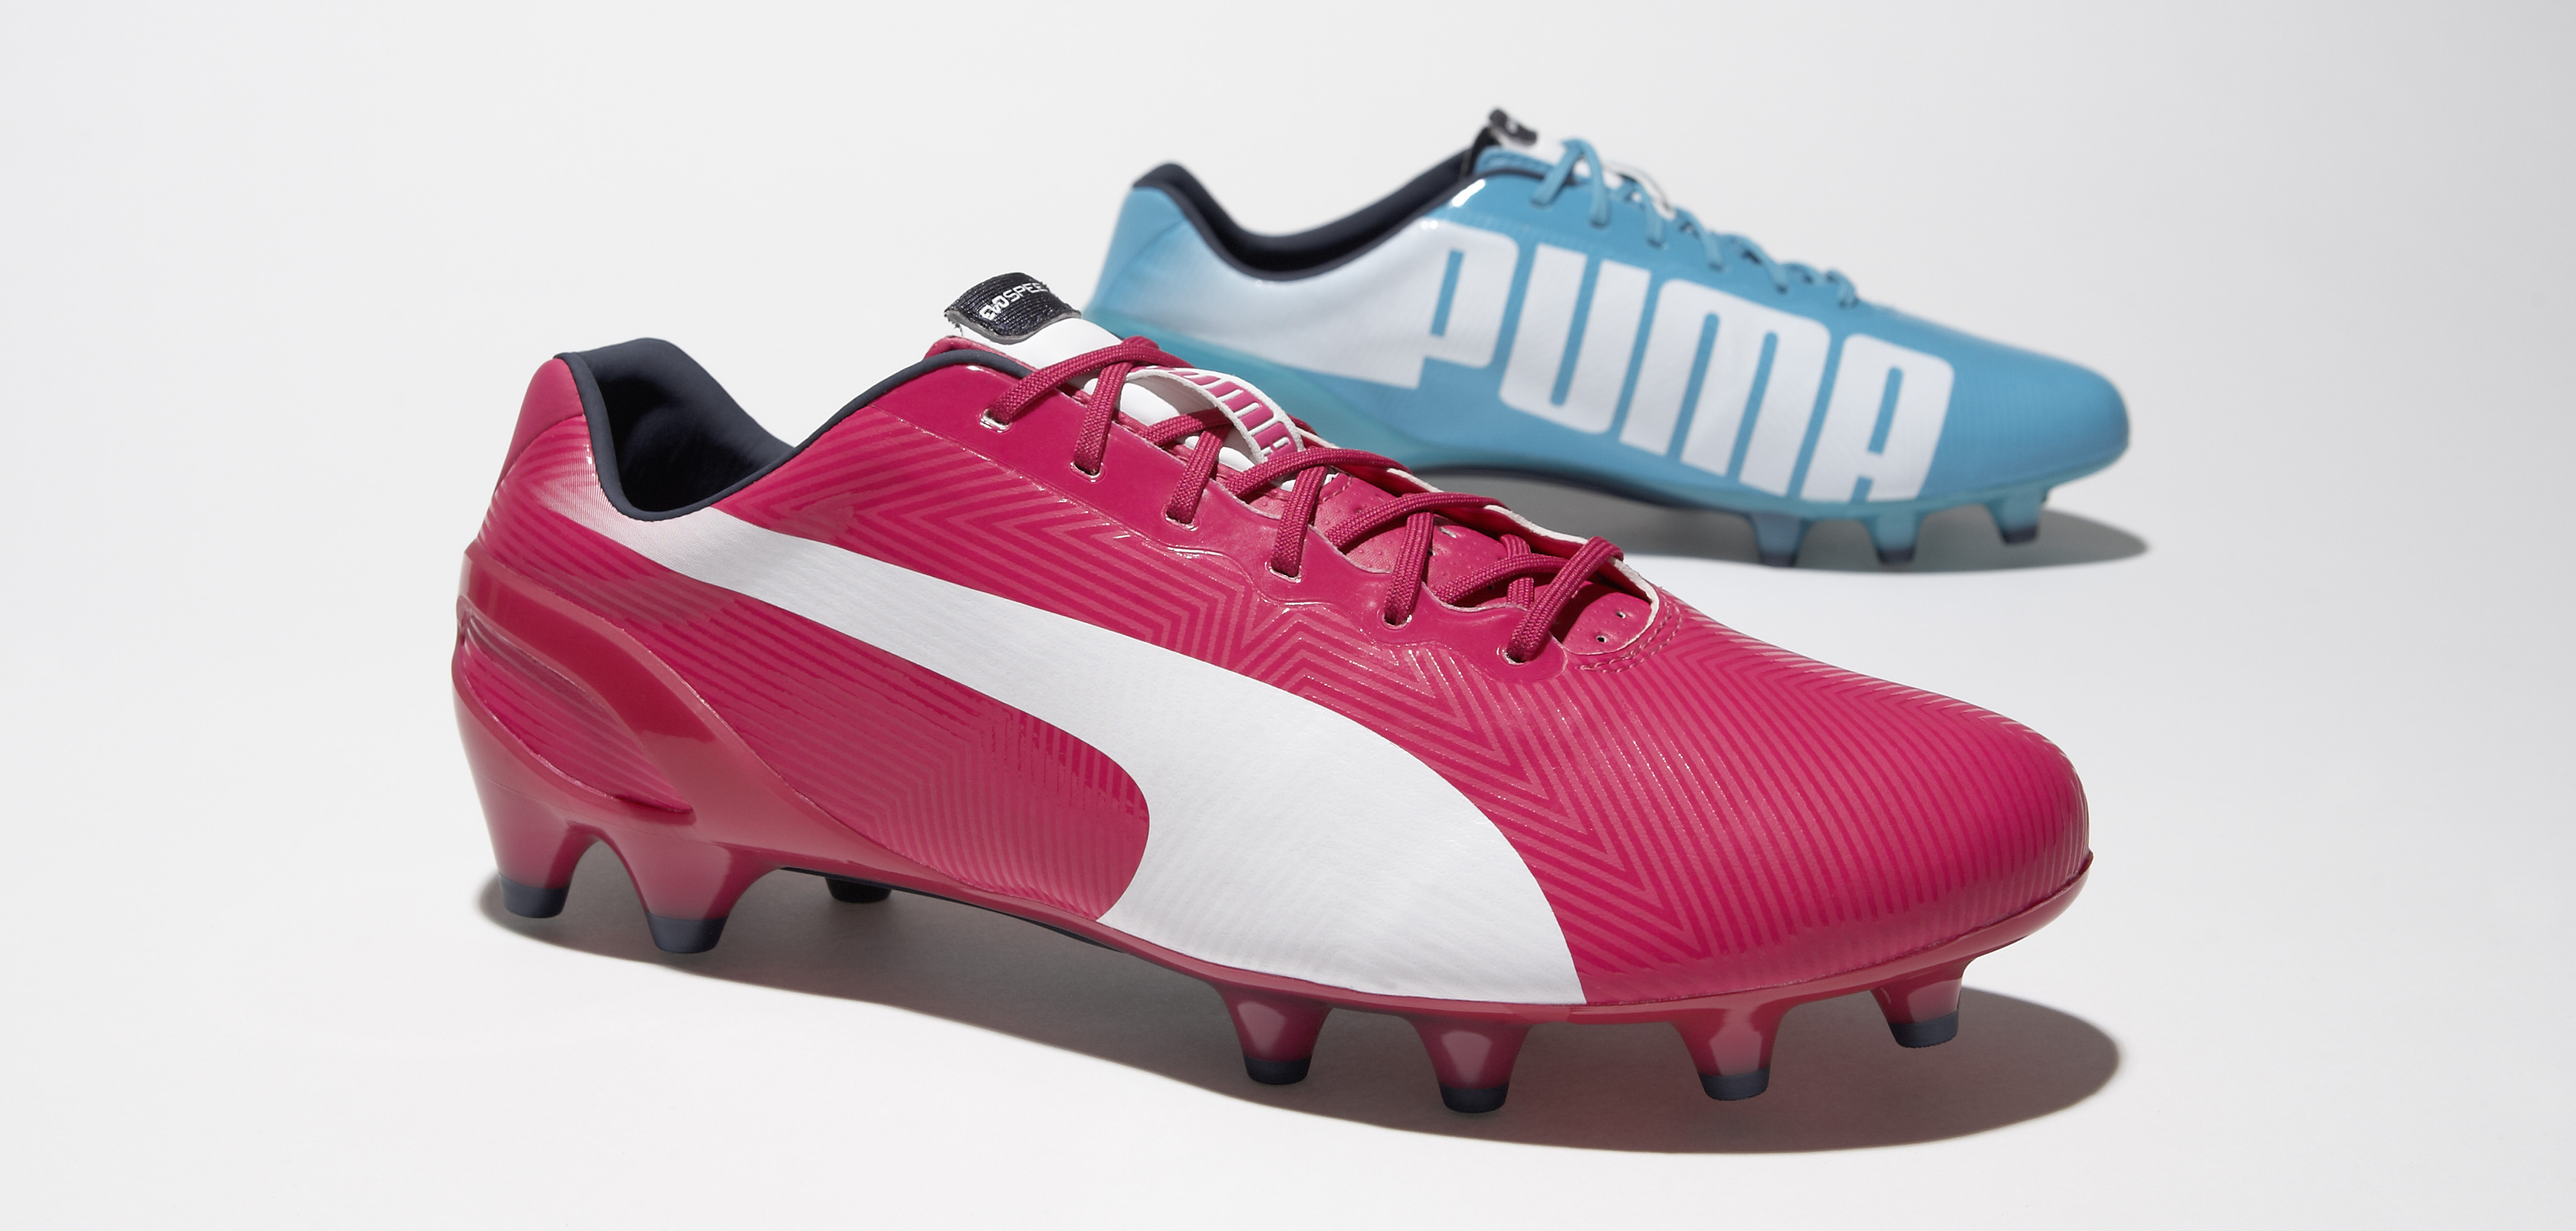 Puma evoSPEED Tricks_1